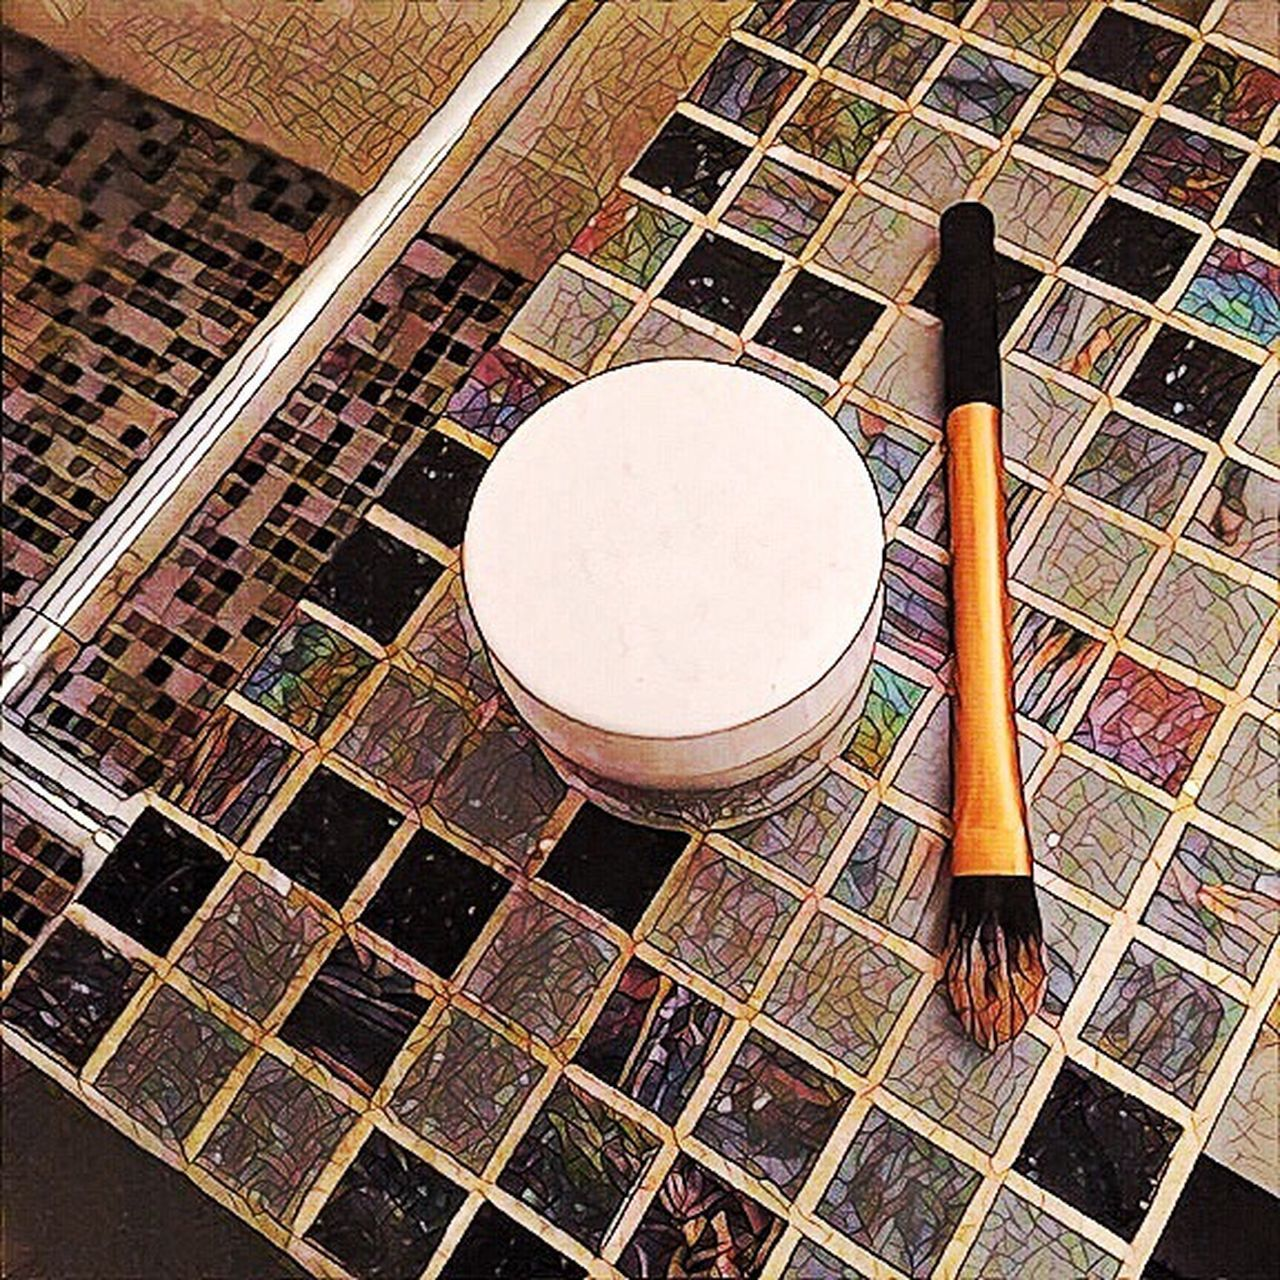 Mosaic Makeup Brush Colors Pot Box Sink Bathroom High Angle View Indoors  No People Day Earthenware